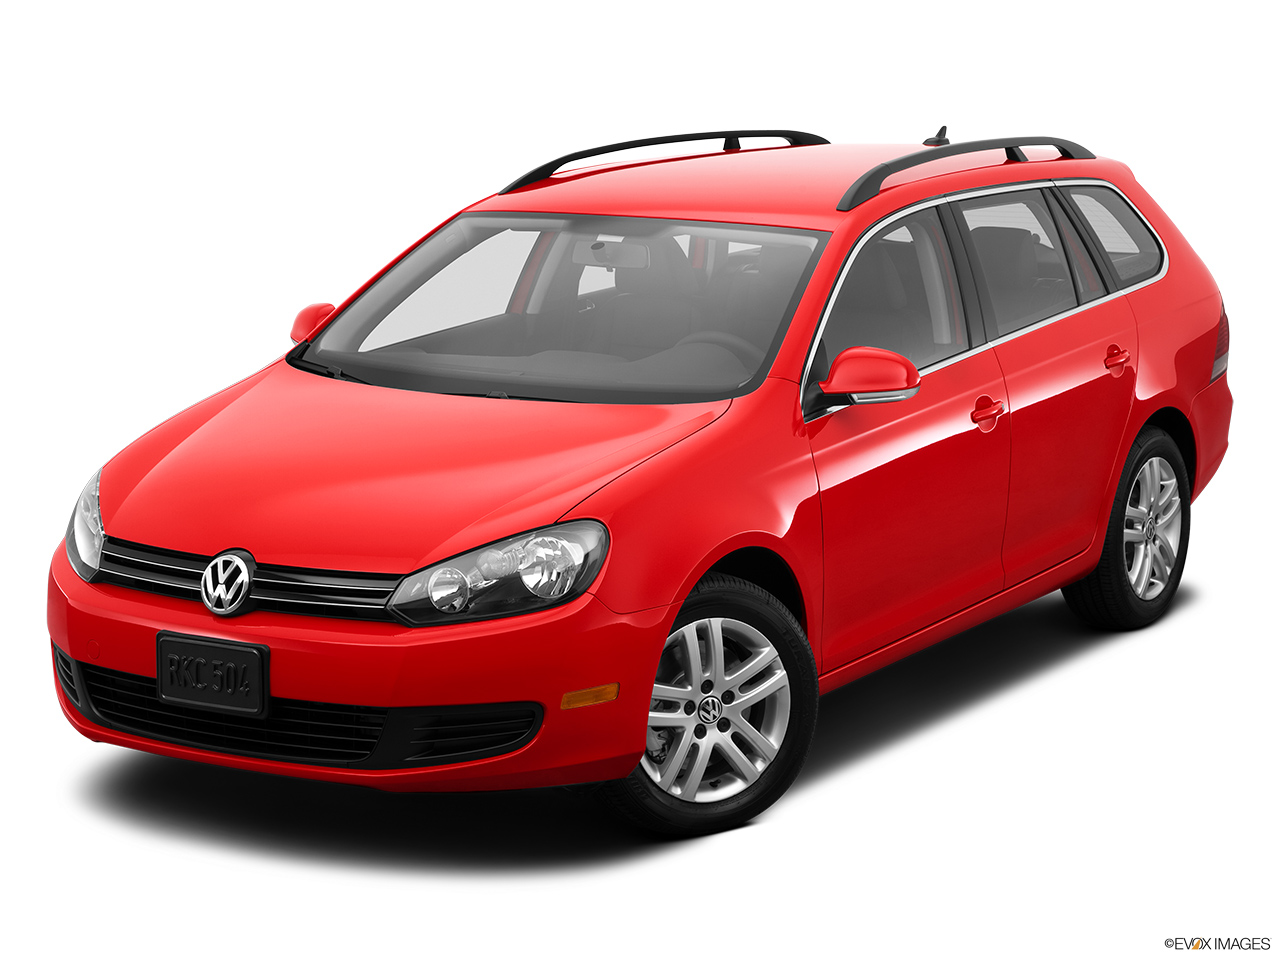 2014 volkswagen jetta sportwagen manual tdi. Black Bedroom Furniture Sets. Home Design Ideas